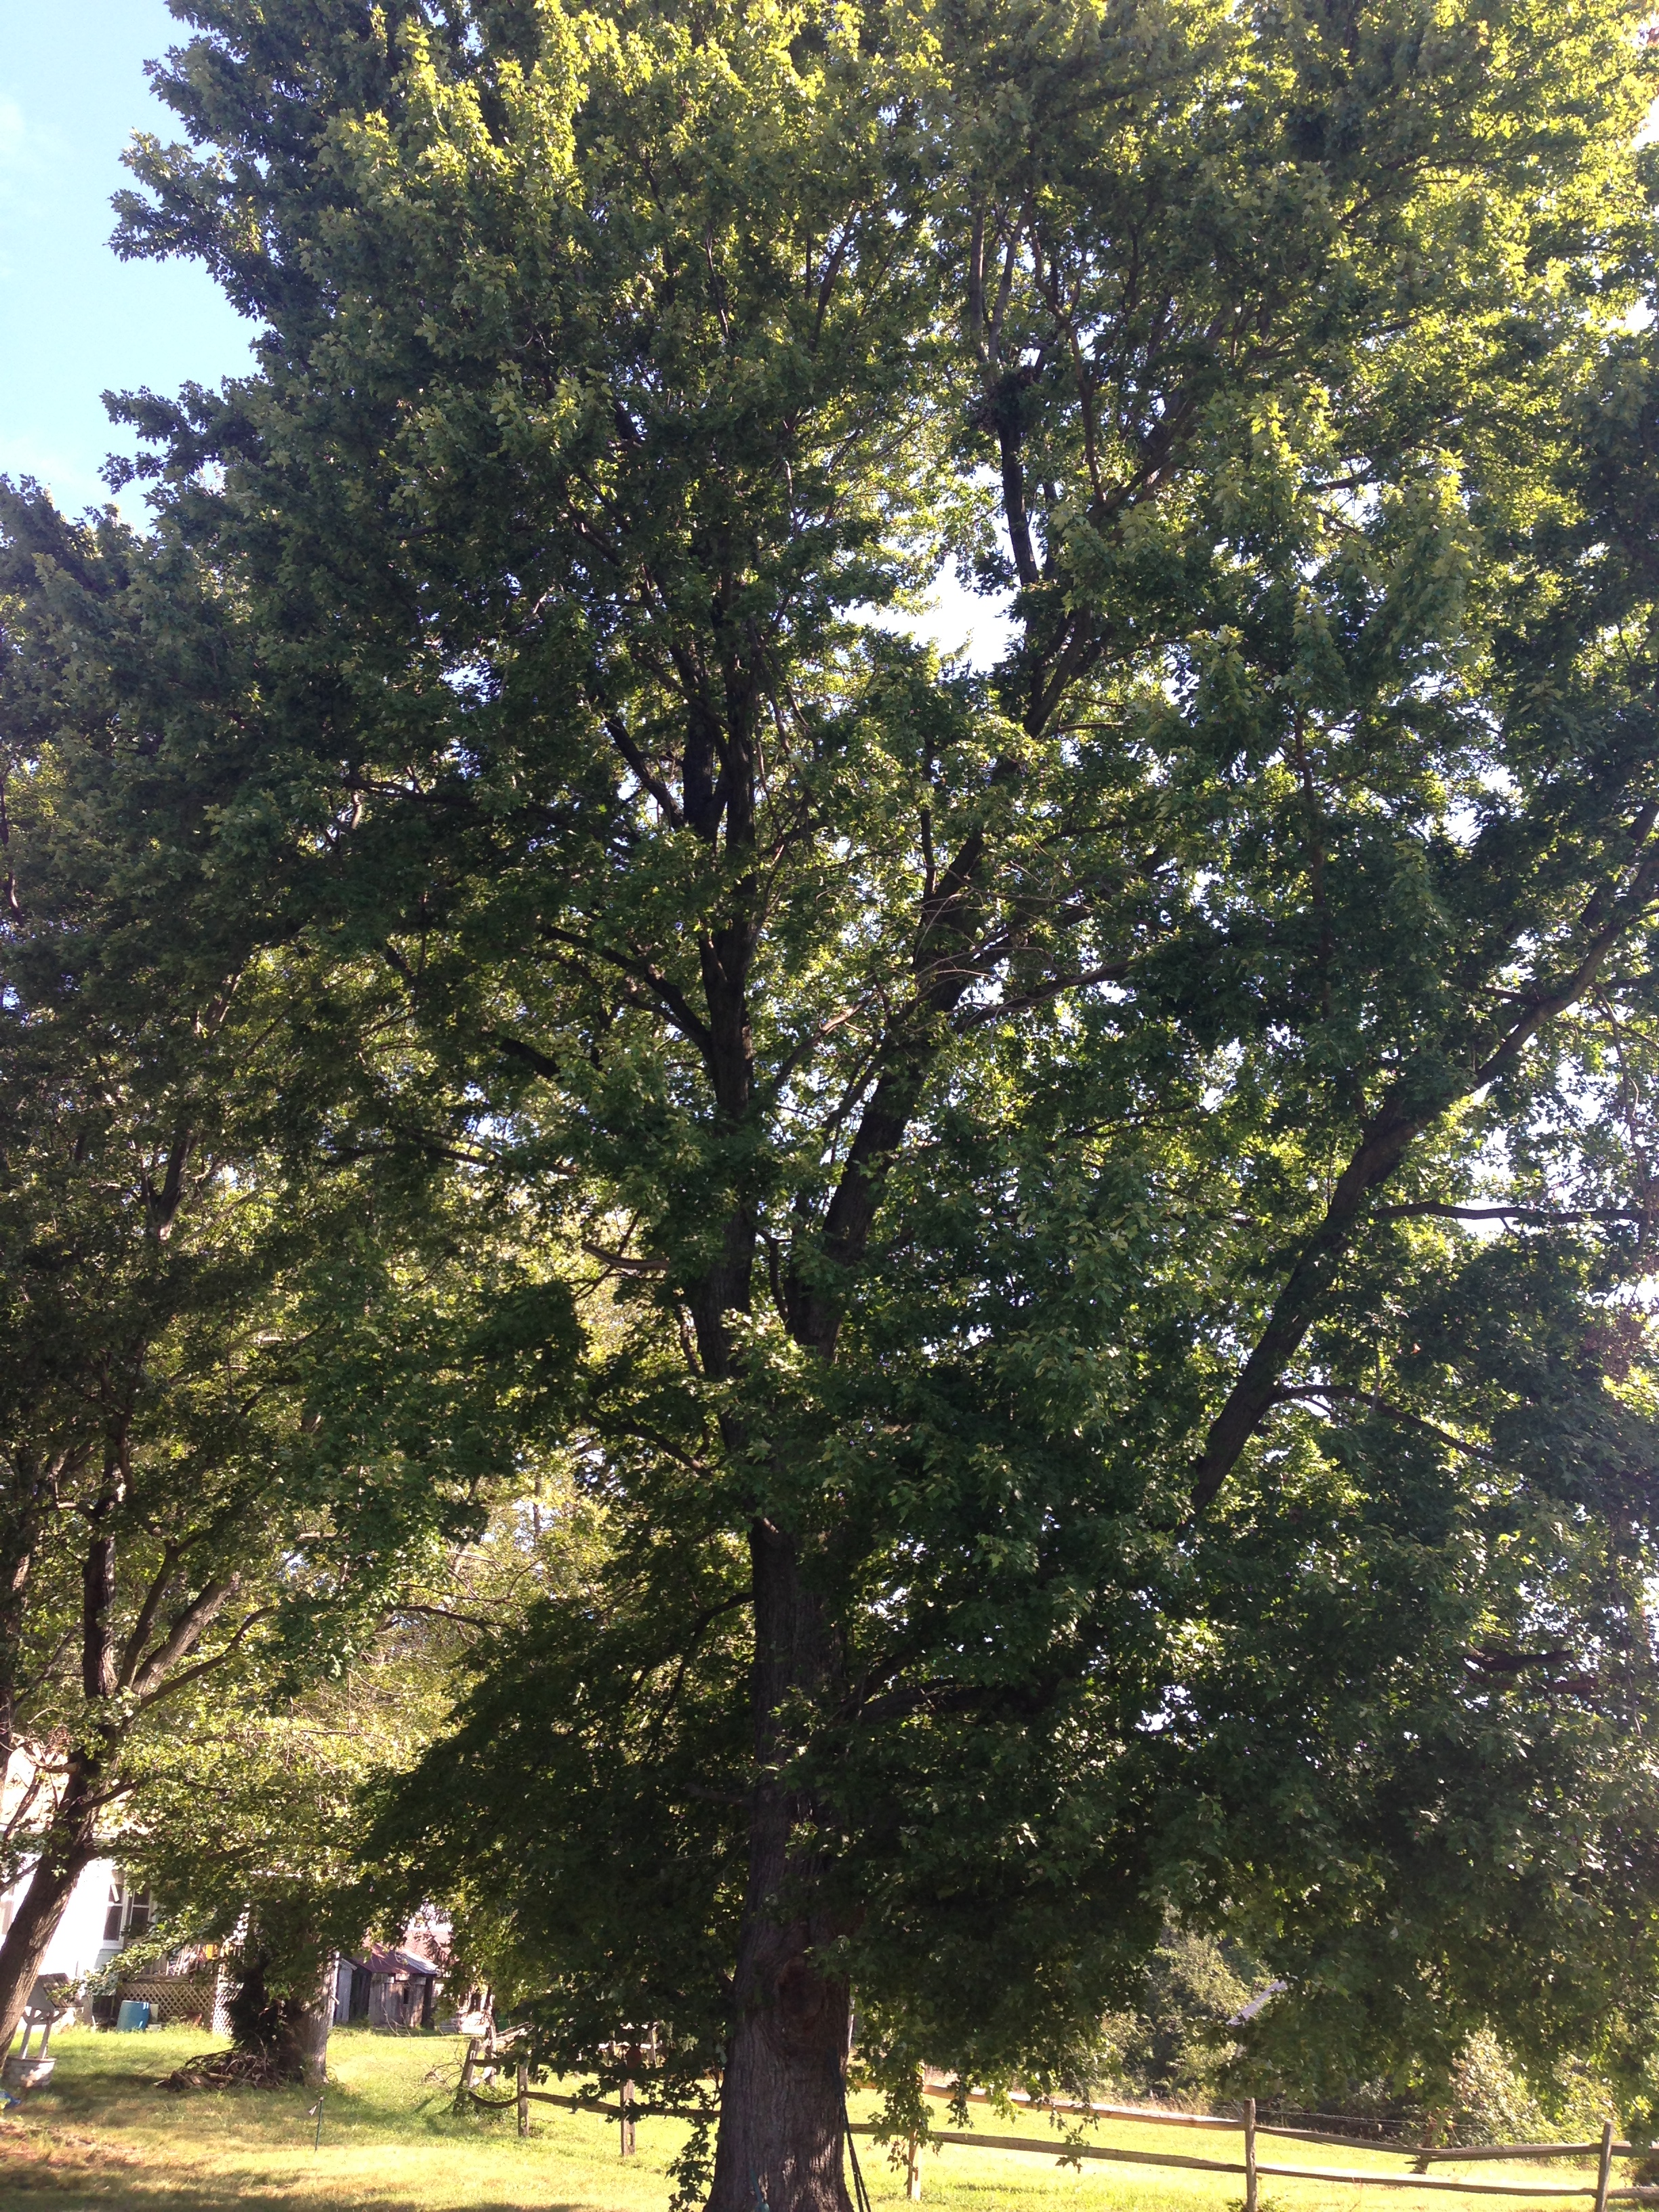 Specimen tree recorded for an NRI in Prince George's County.